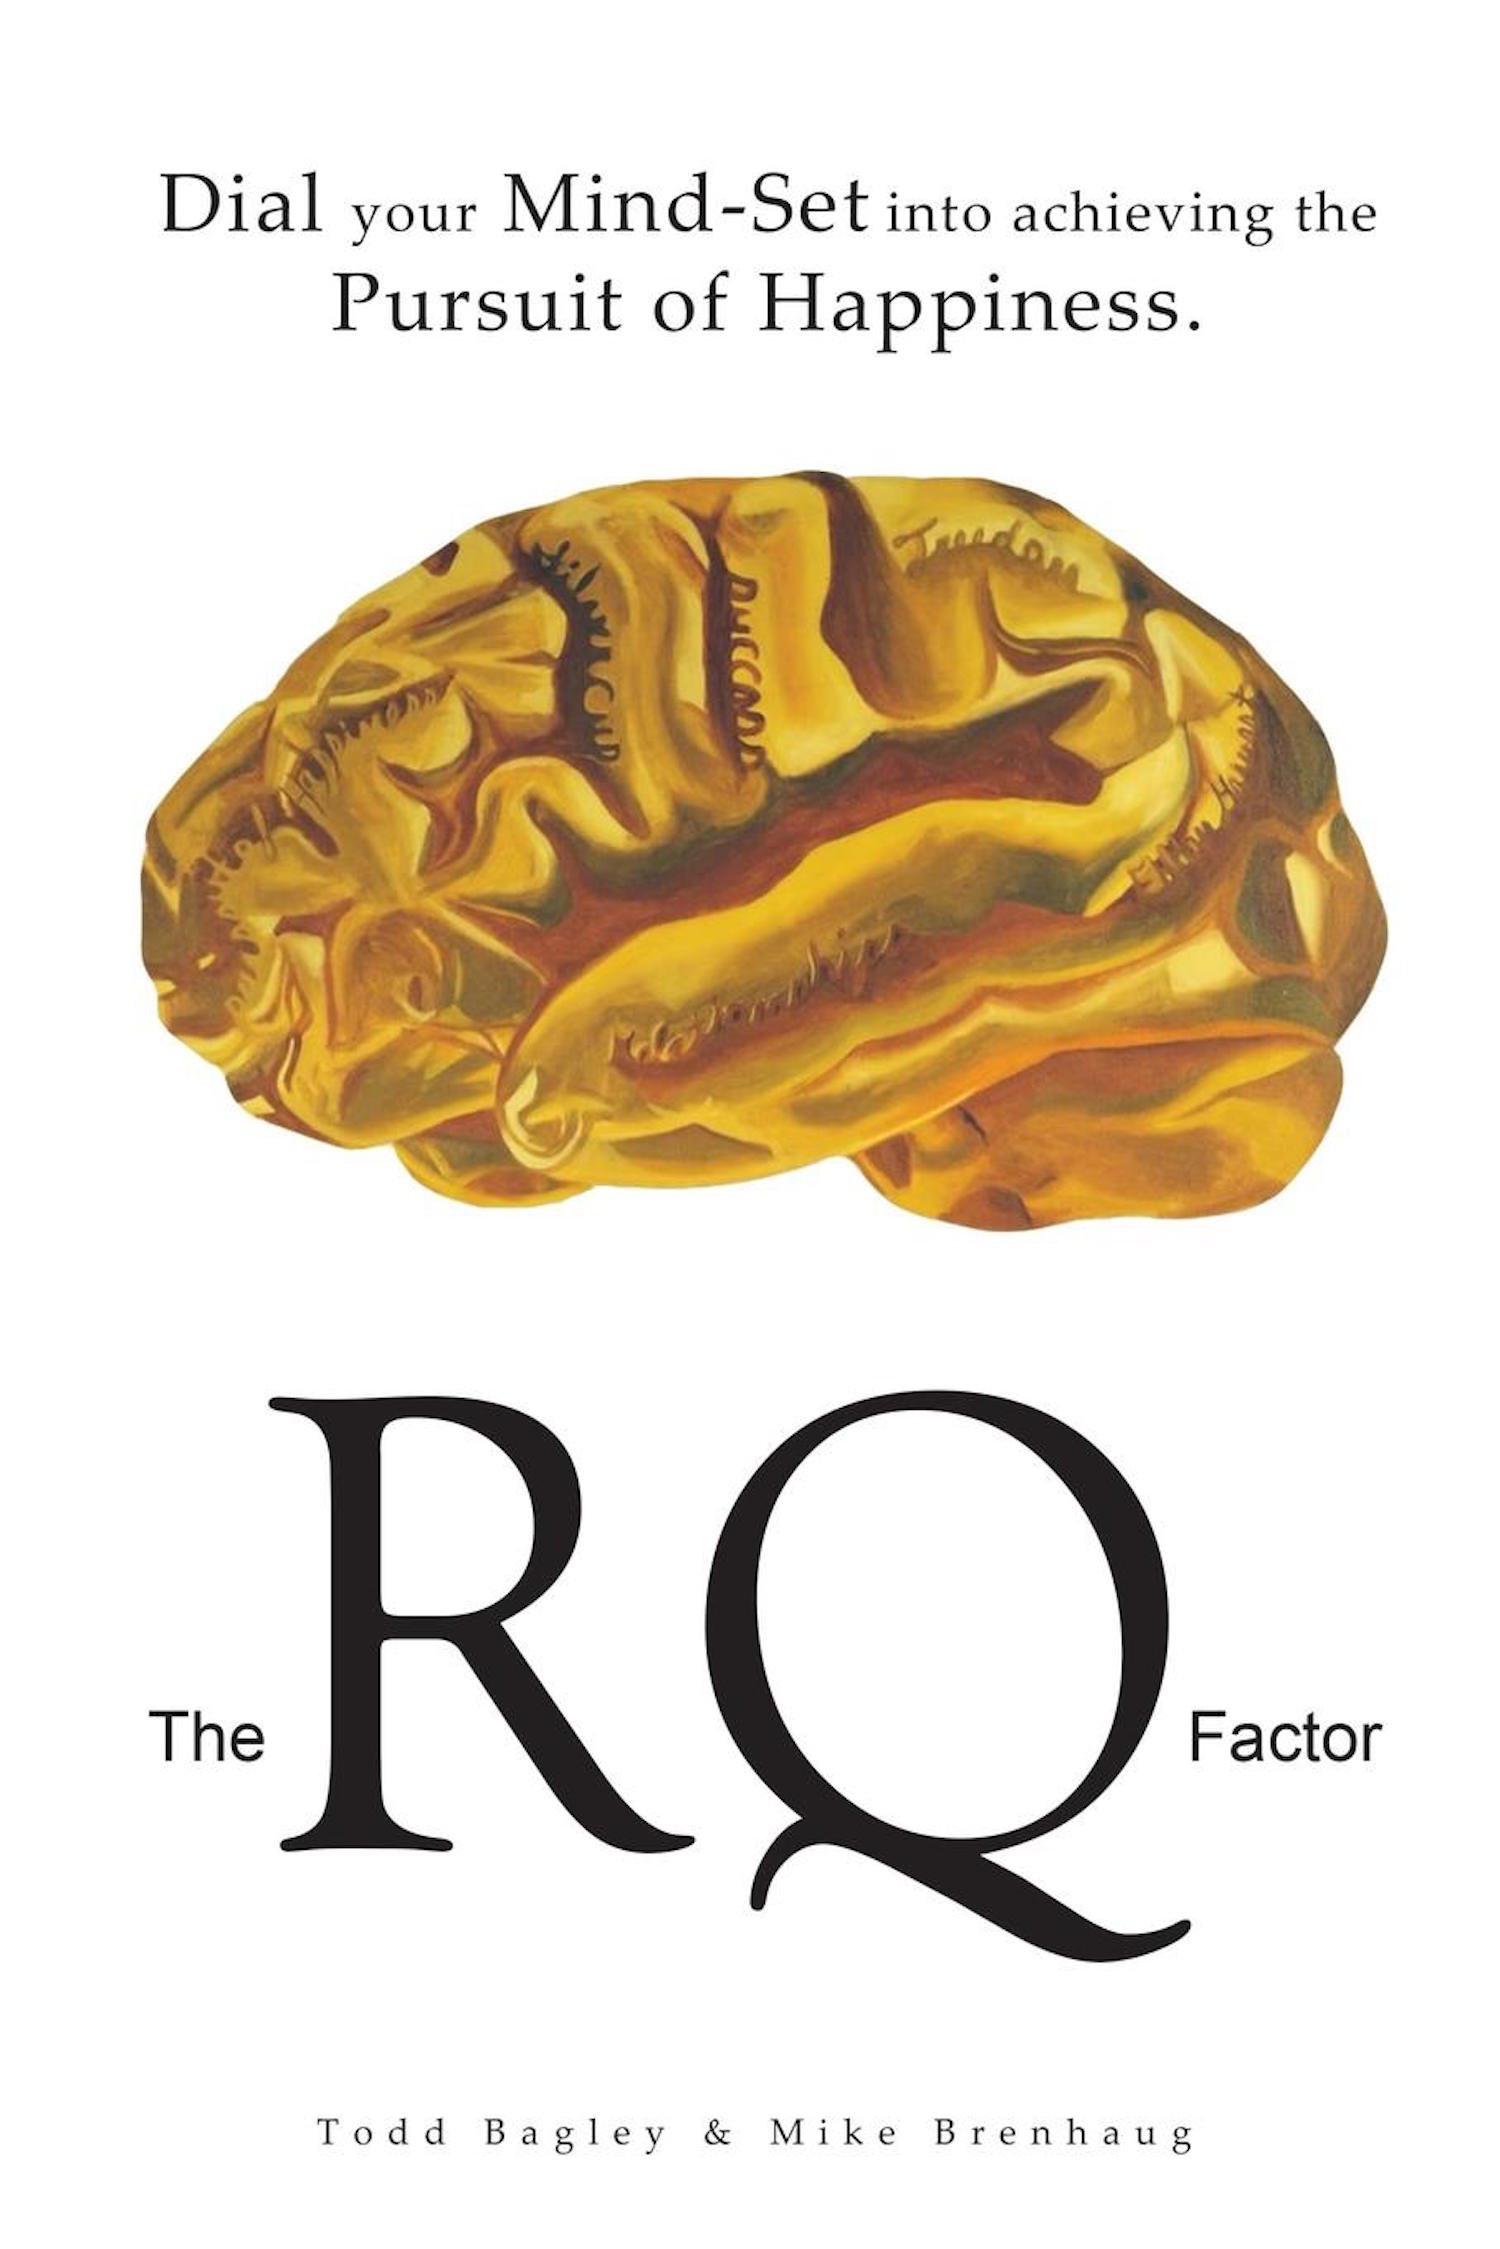 The RQ Factor: Dial your Mind-Set into achieving the Pursuit of Happiness